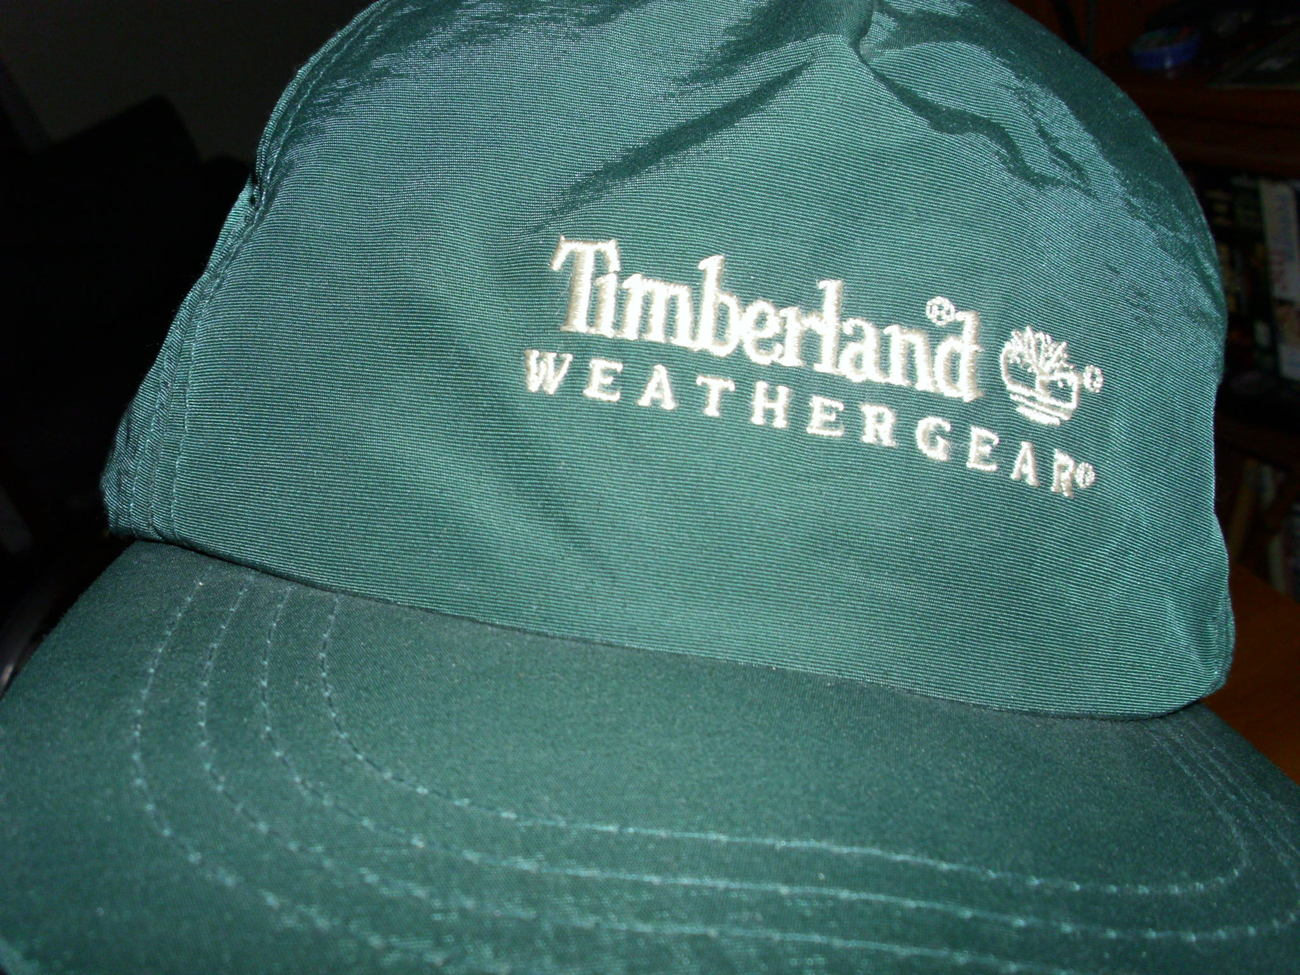 TIMBERLAND Weathergear   Adult green baseball cap - One size fits all